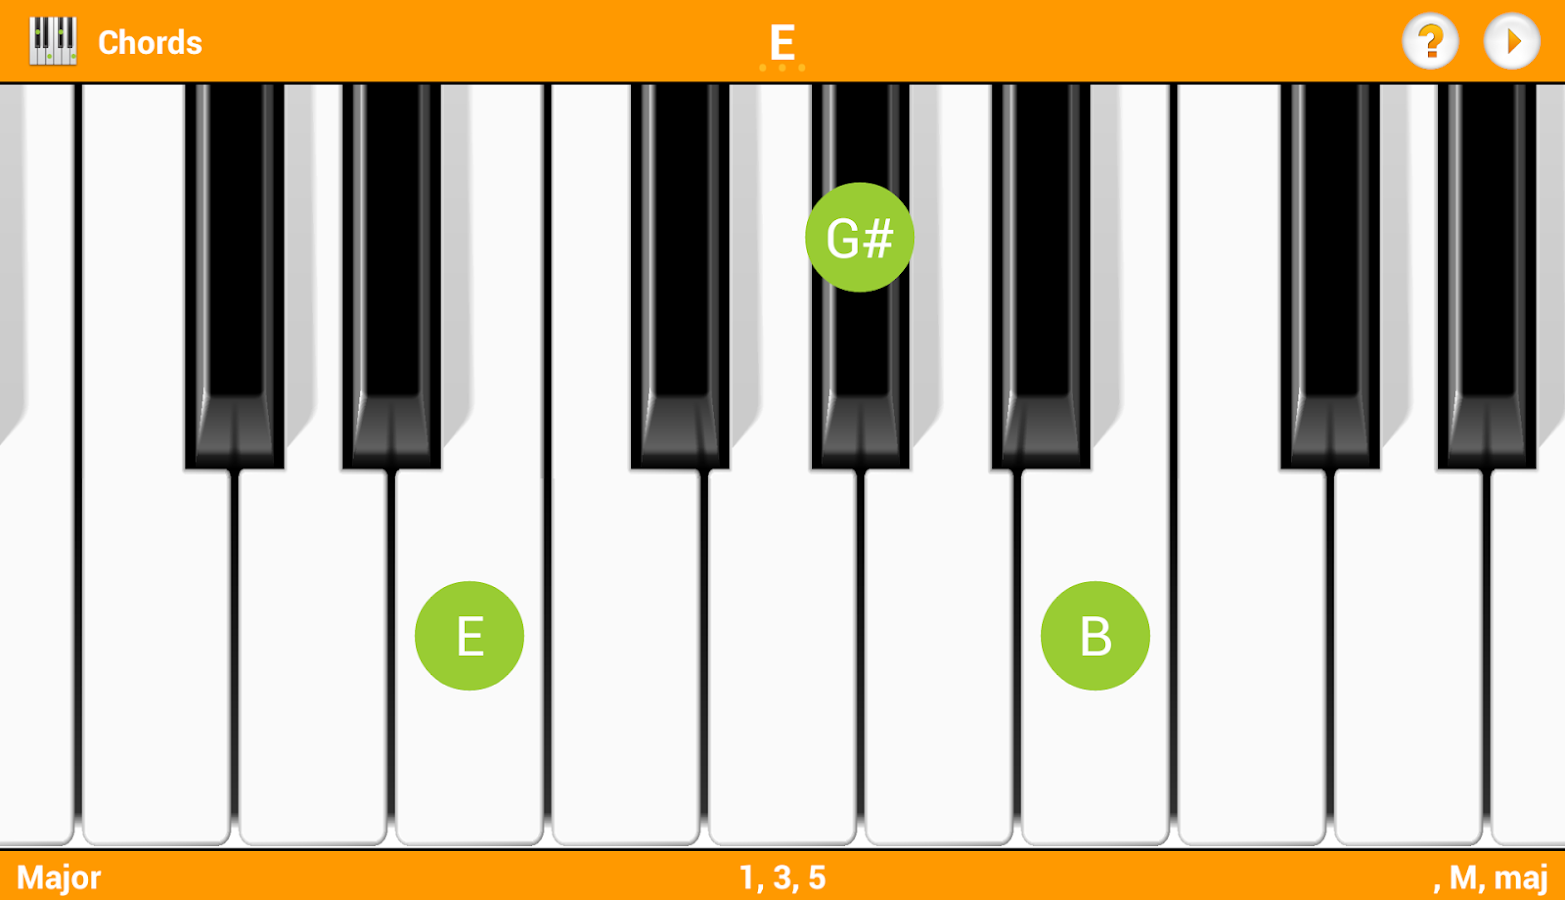 Keychord piano chordsscales android apps on google play keychord piano chordsscales screenshot hexwebz Image collections